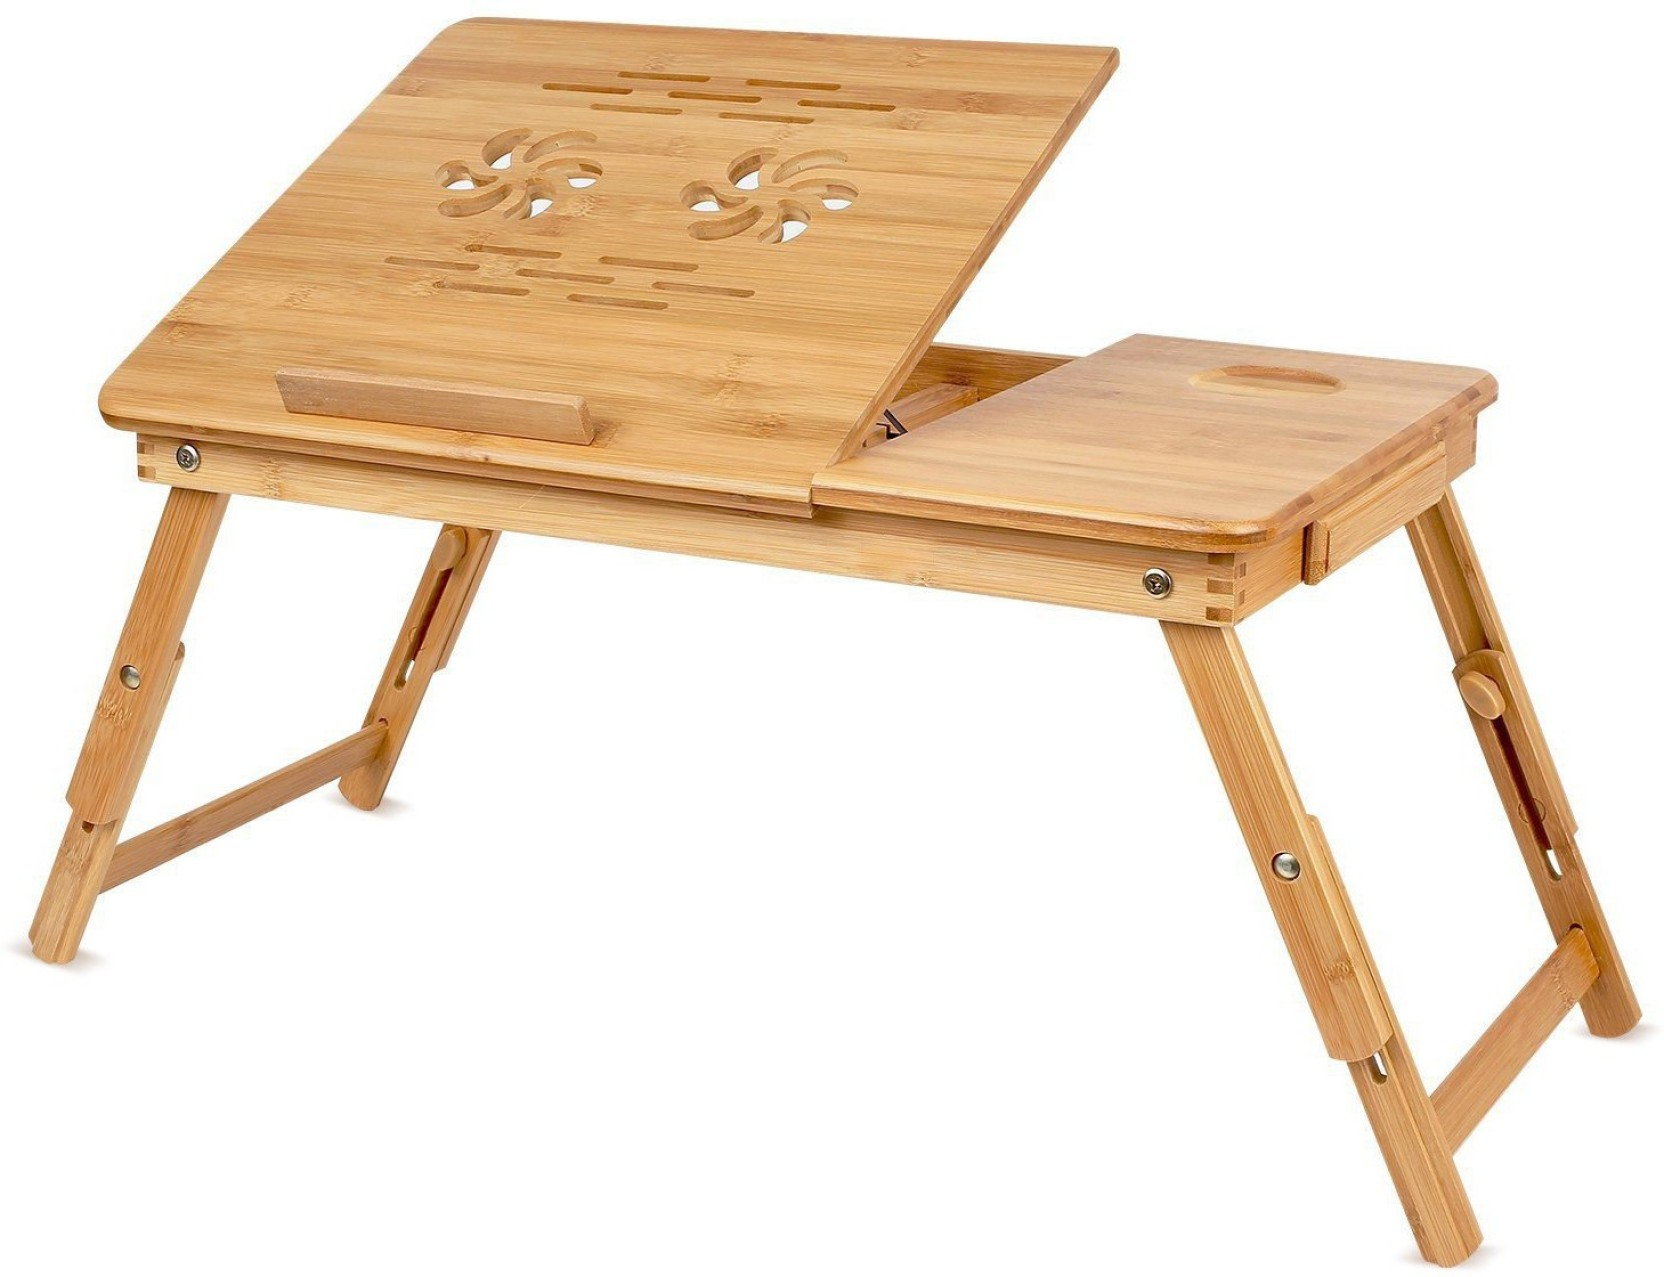 Snazzy large size premium quality multi purpose foldable portable wooden bed table study table laptop table kids activity table wood portable laptop table